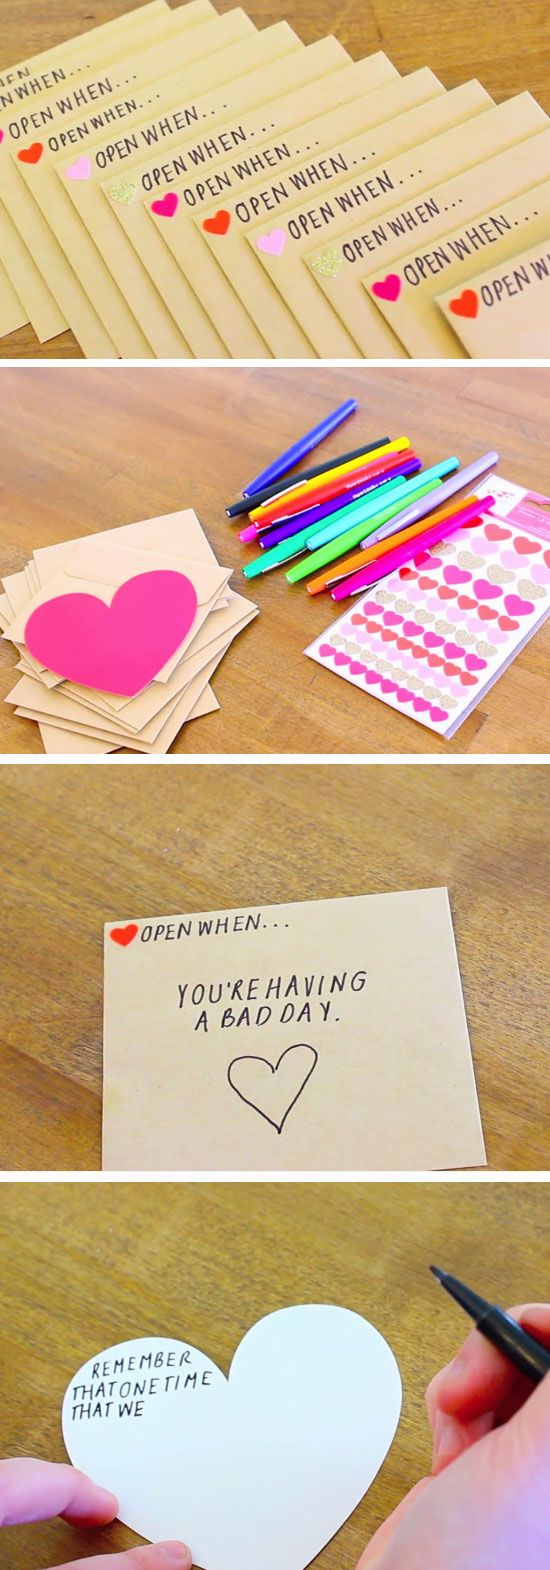 homemade gift ideas for boyfriend